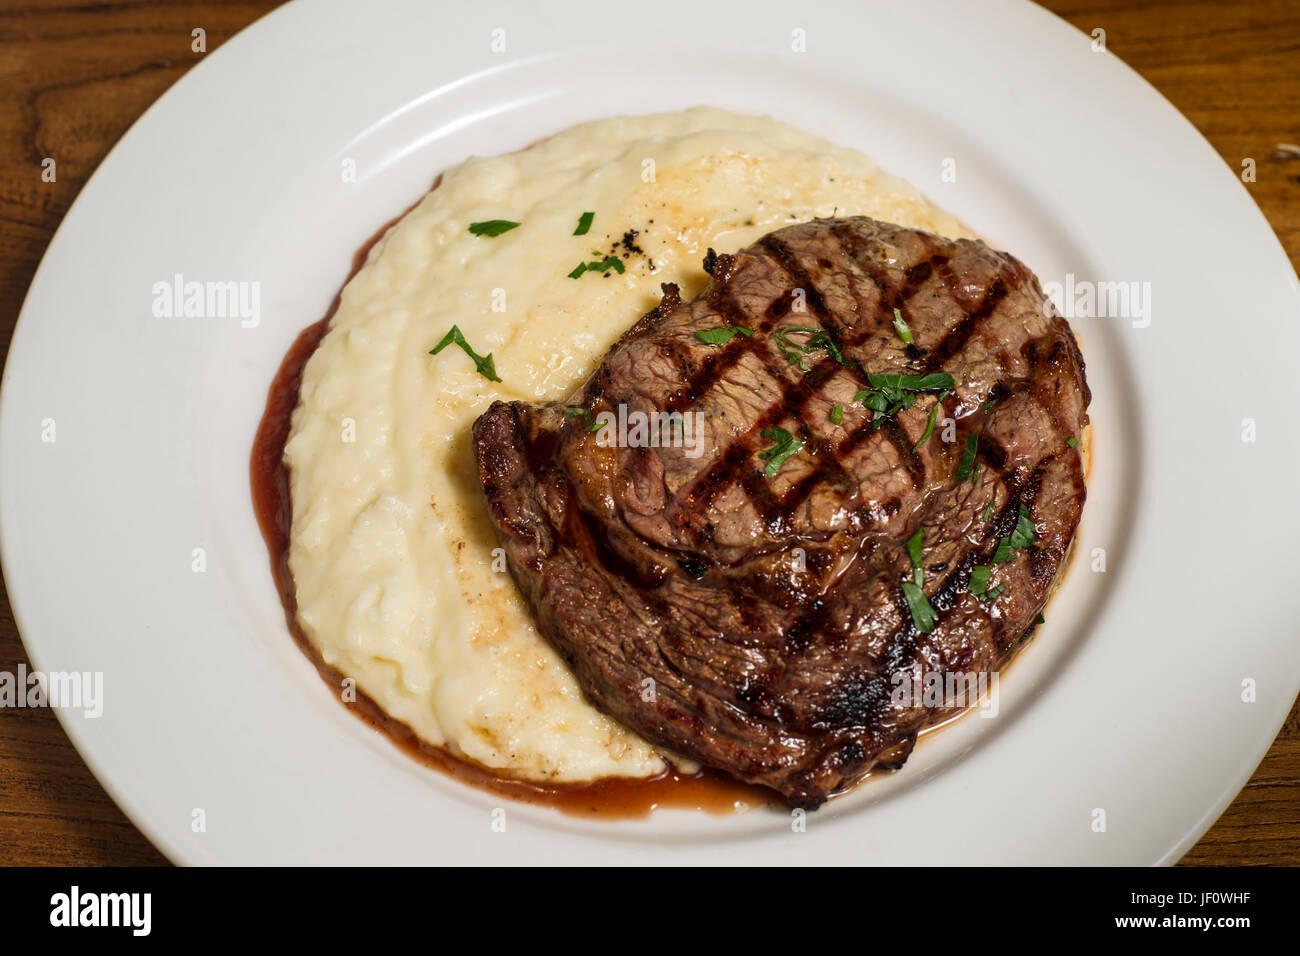 Beef steak with mash potato on white plate - Stock Image